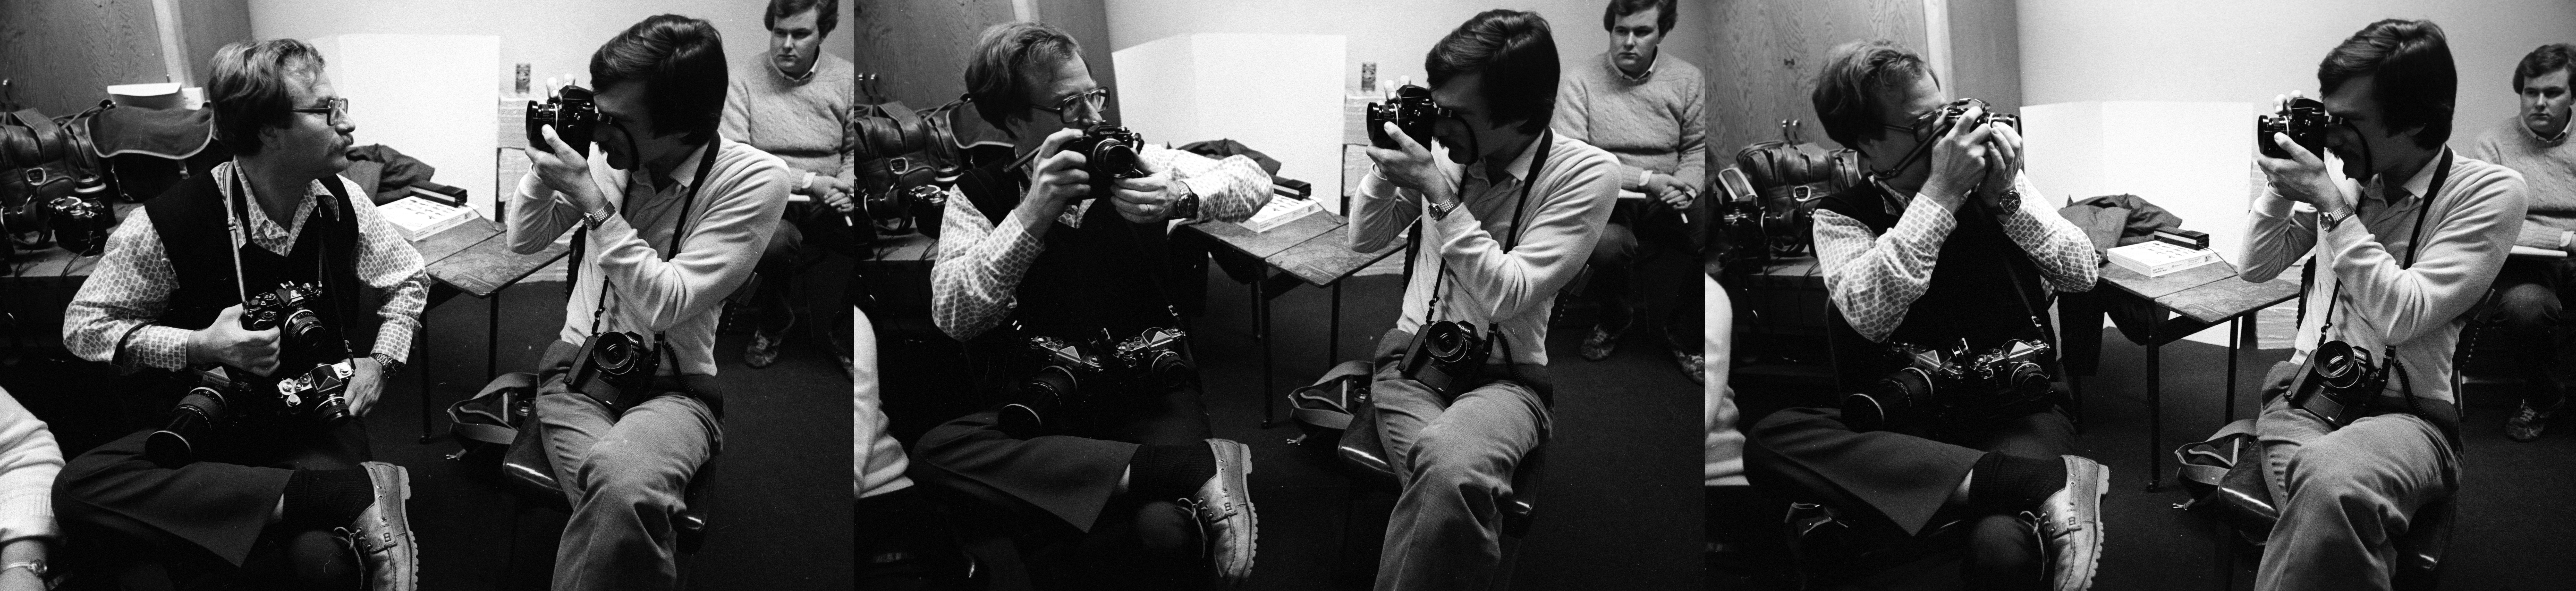 Photographers Richard Sheinwald of the AP (l) and Robert Chase of the Ann Arbor News, January 5, 1982 image